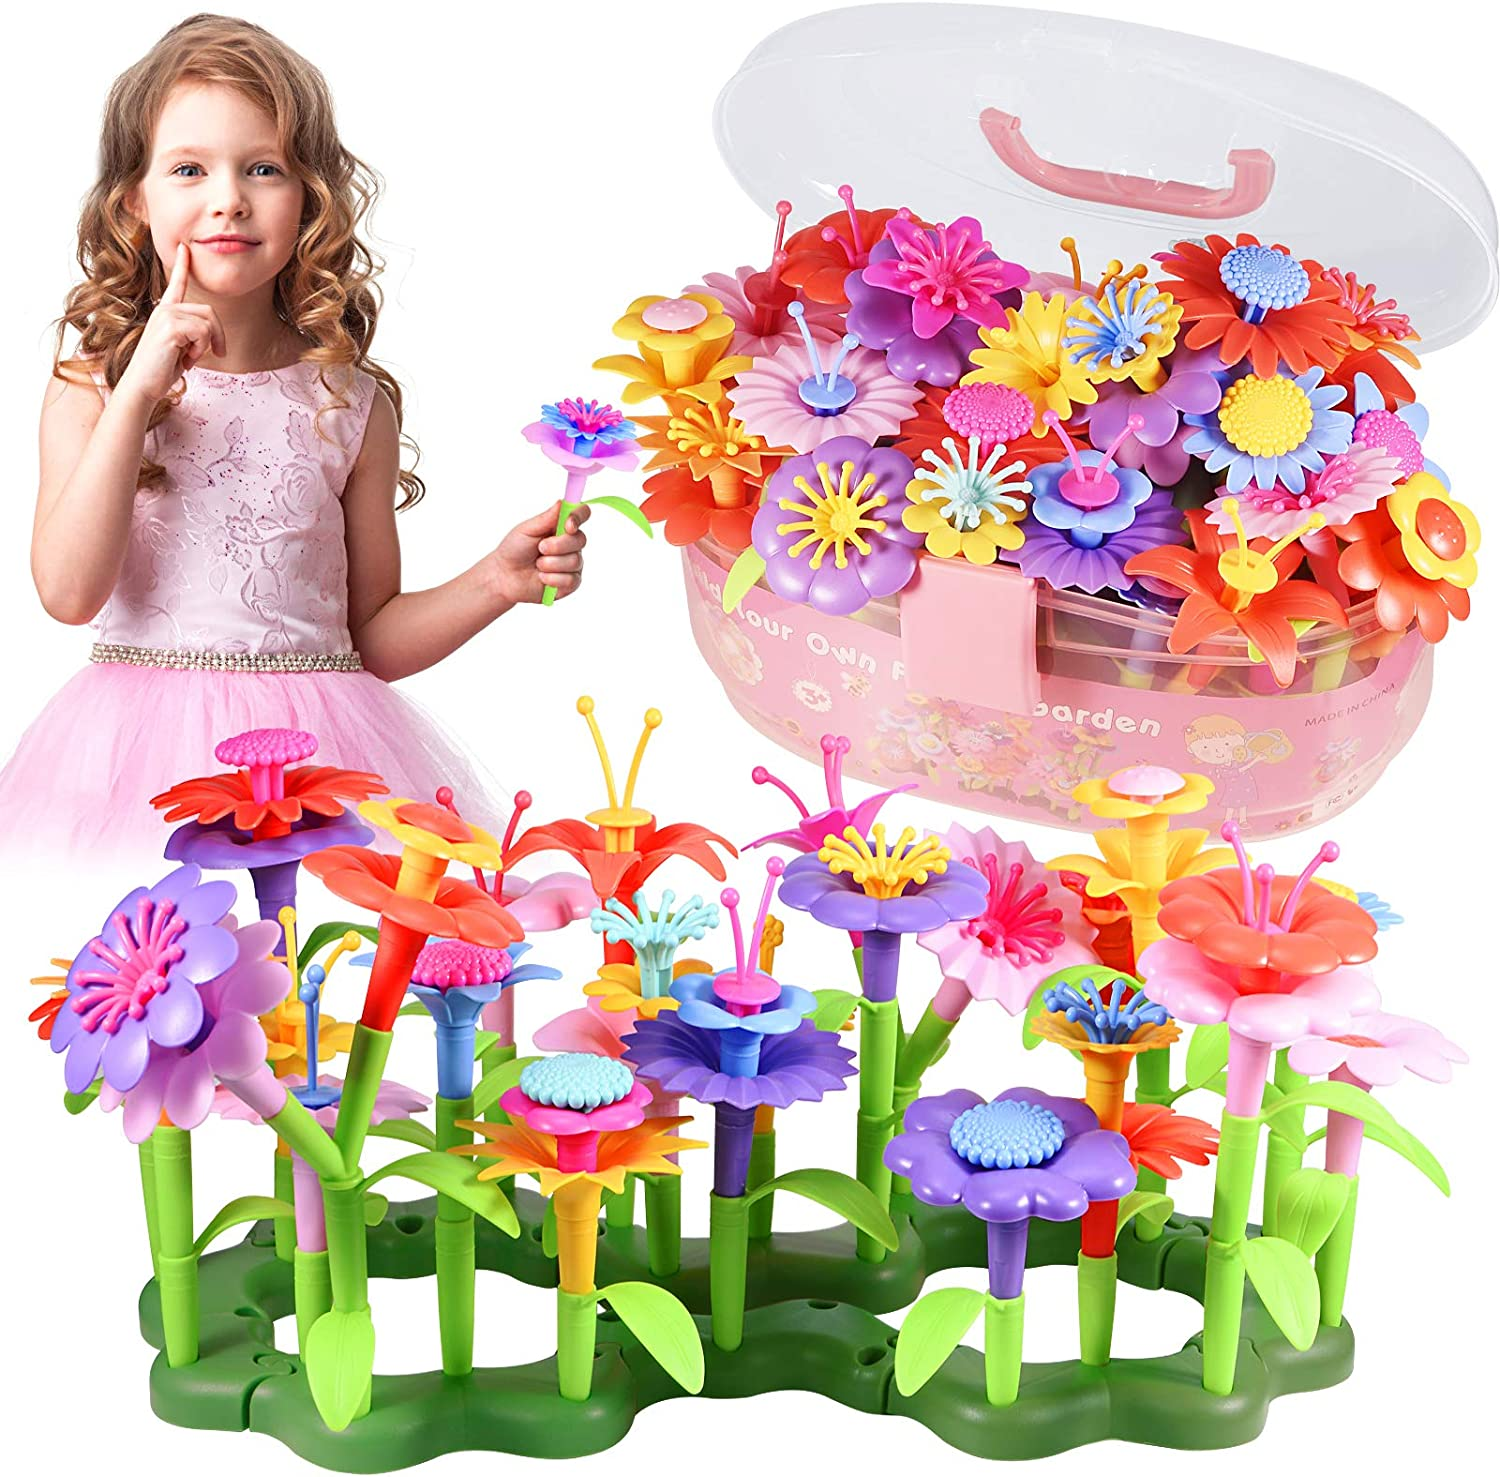 Holiky Building Toys for 3-9 Year Old Girls, Flower Garden Gifts for Girls and Boys, Educational Activity STEM Toys, Build a Bouquet Floral Arrangement Games for Kids